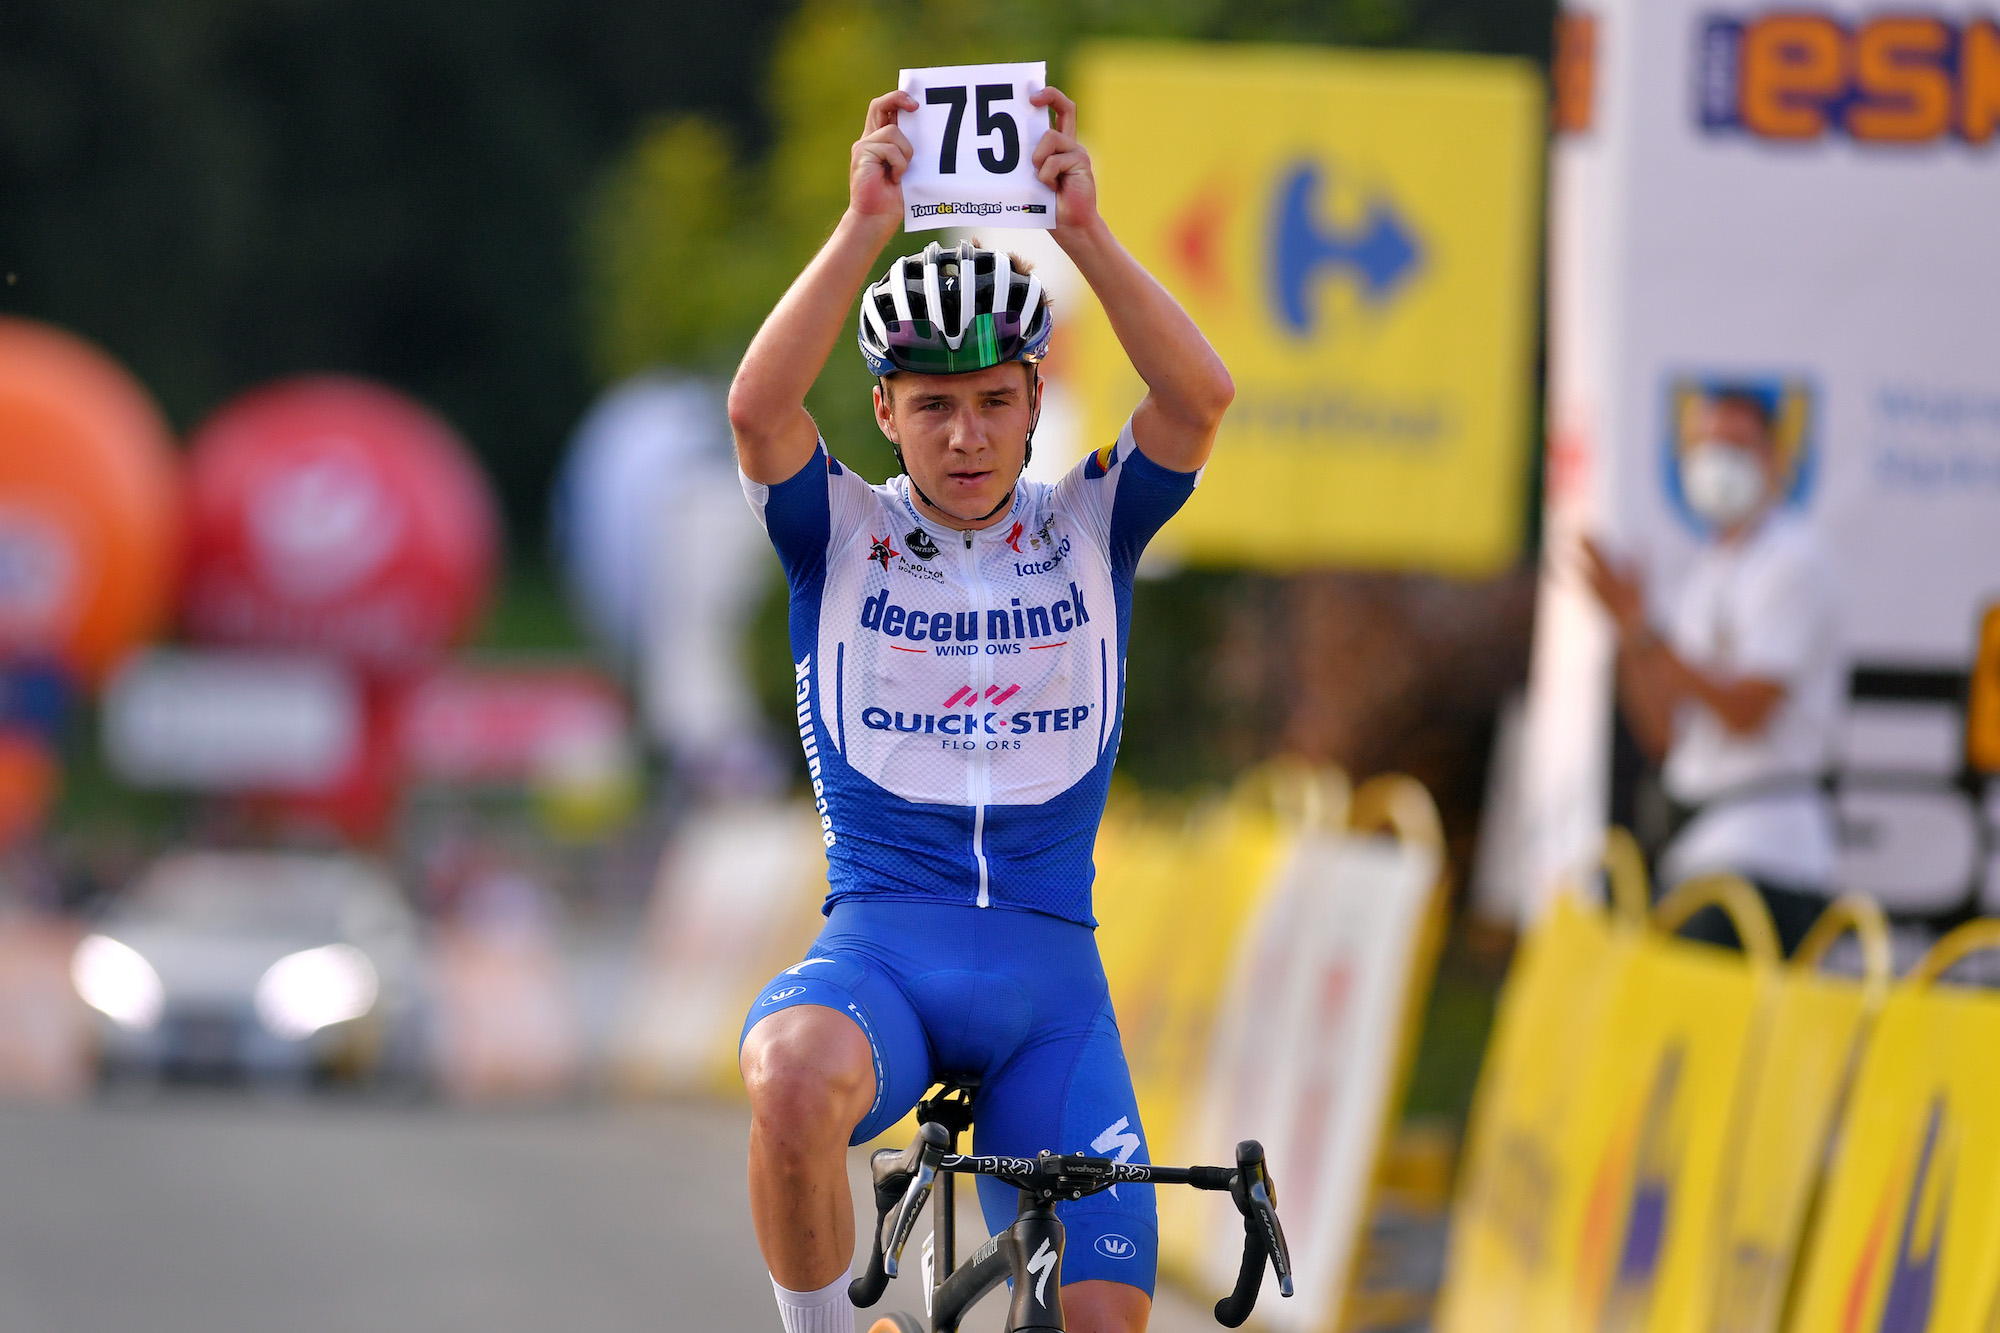 Remco Evenepoel says 'the fear of gaining weight was there' during his recovery as he drops 5kg - Cycling Weekly